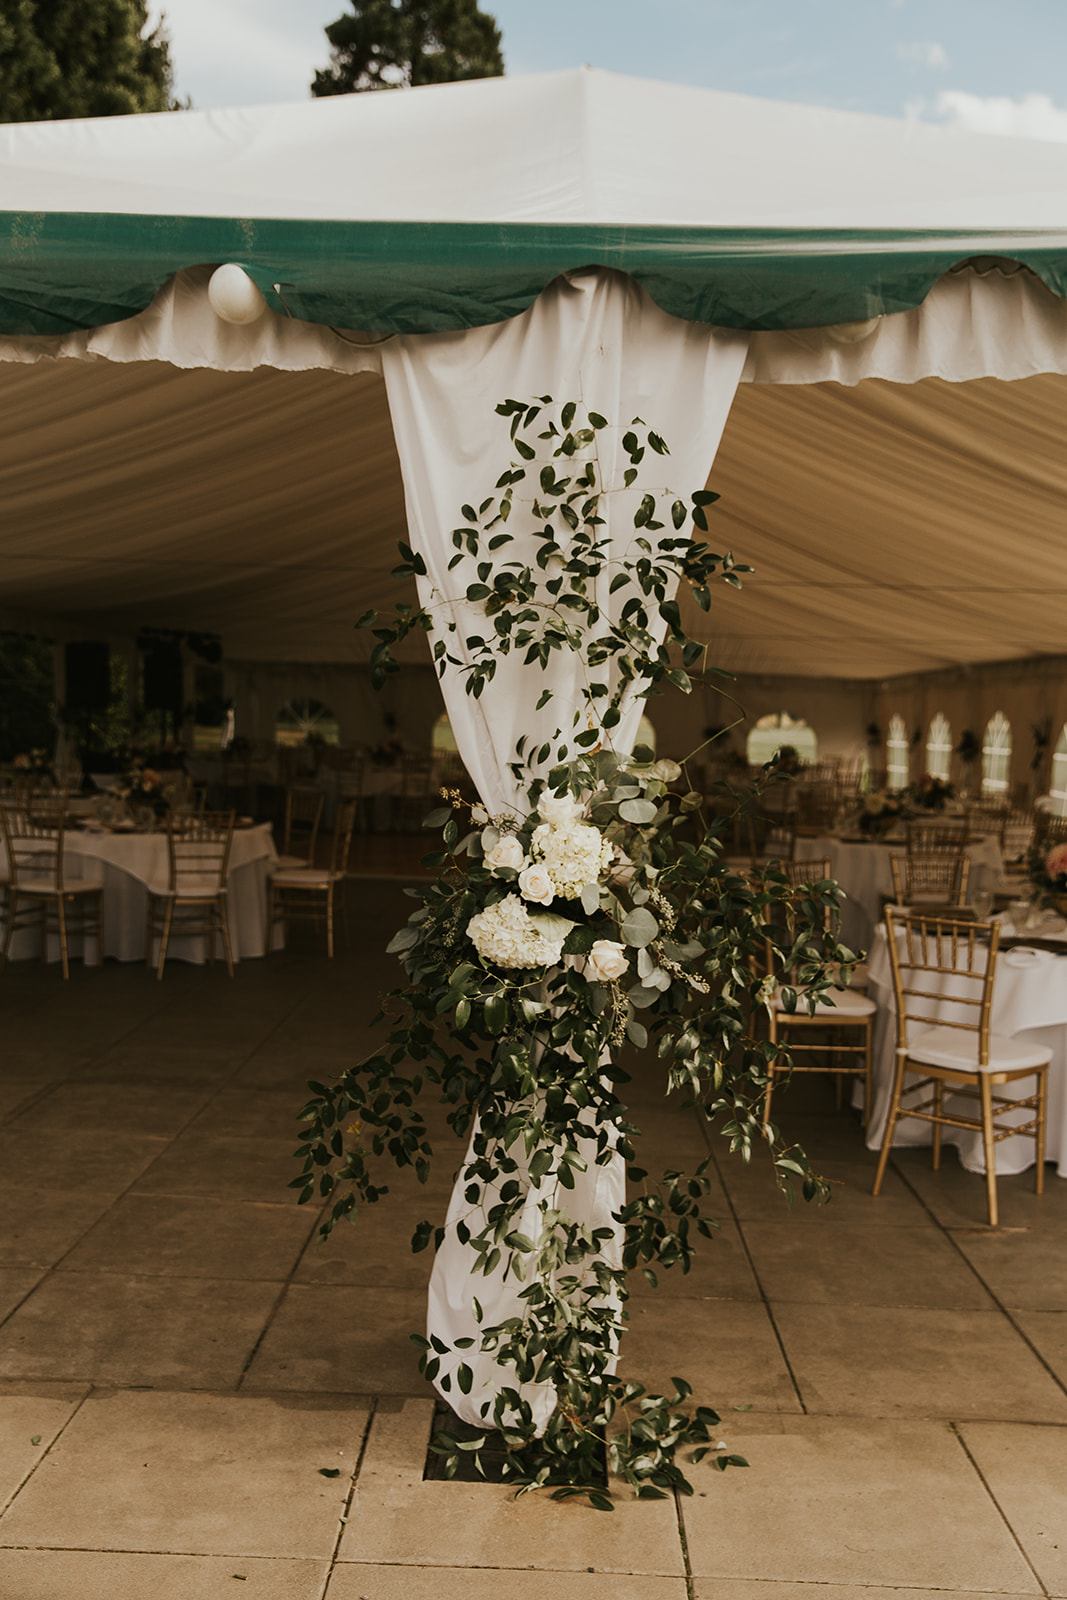 wedding tent entrance, wedding tent decor, wedding tent flowers, southern smilax wedding tent, wedding reception decor, reception entrance, reception tent, white and greenery wedding flowers